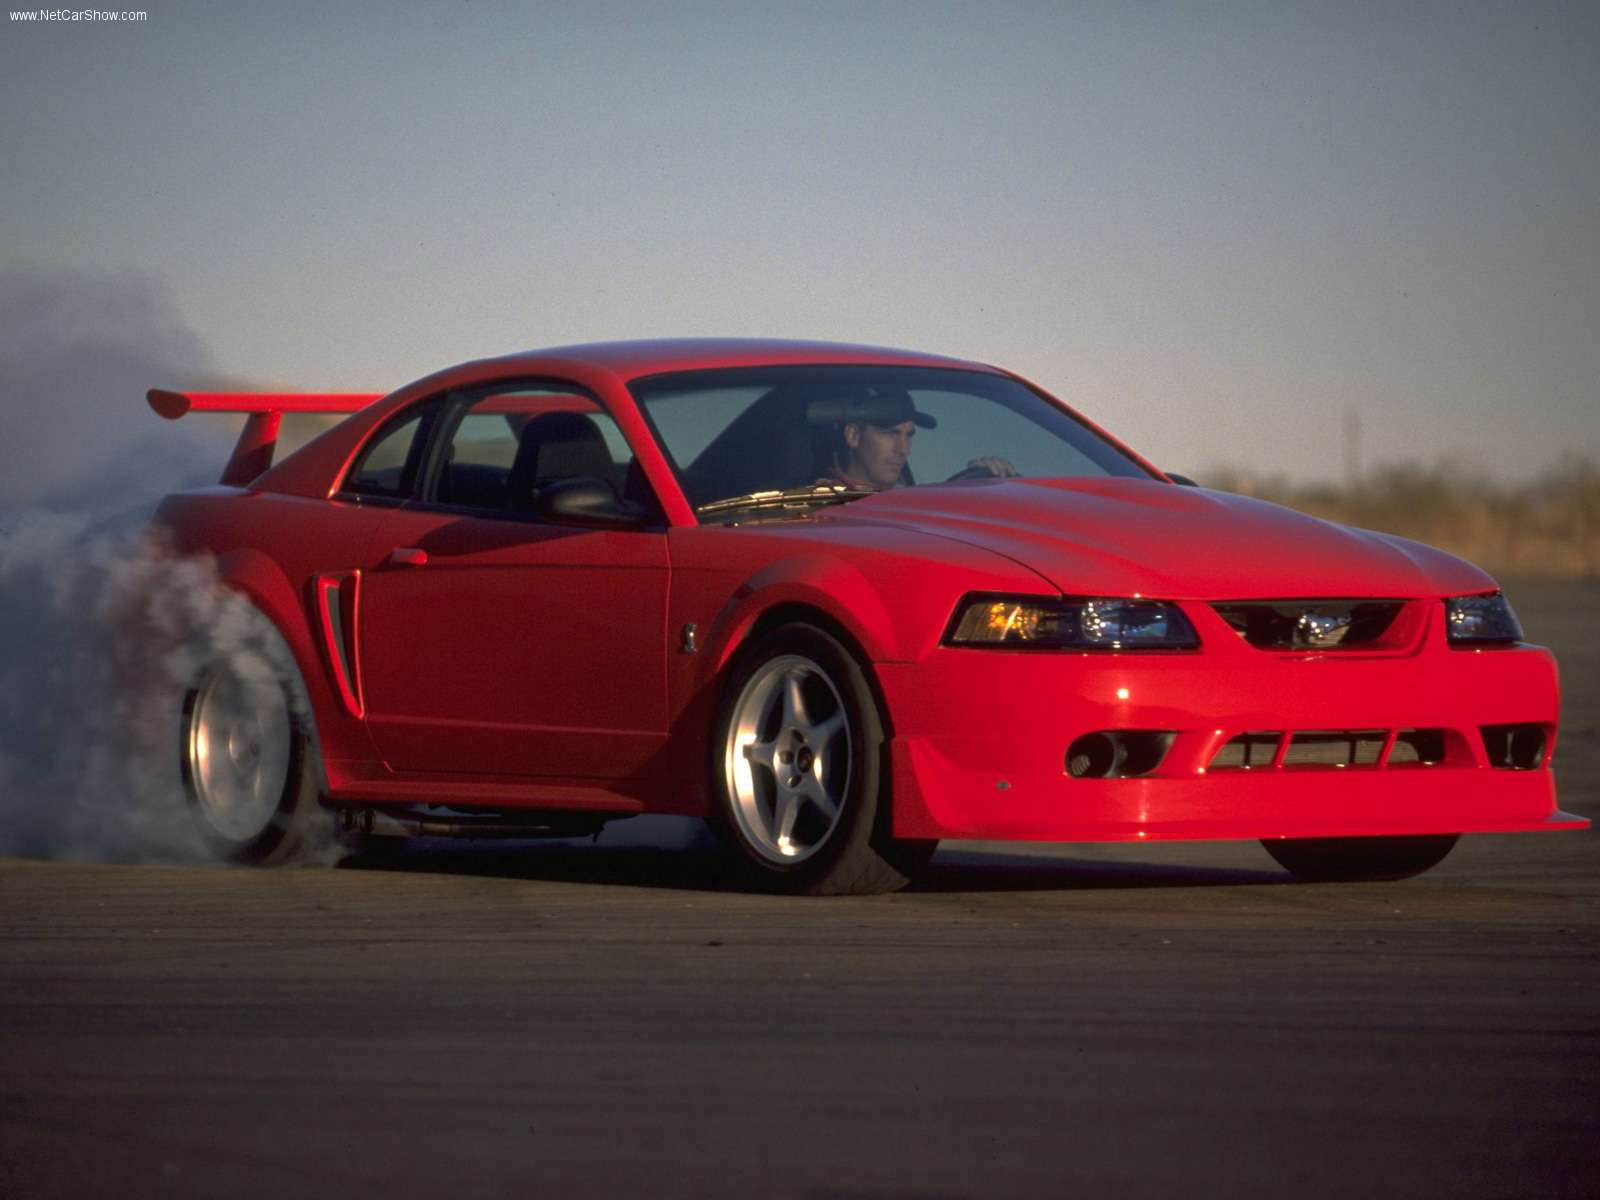 Cl Mustang >> 3DTuning of Mustang Cobra R Coupe 2000 3DTuning.com - unique on-line car configurator for more ...